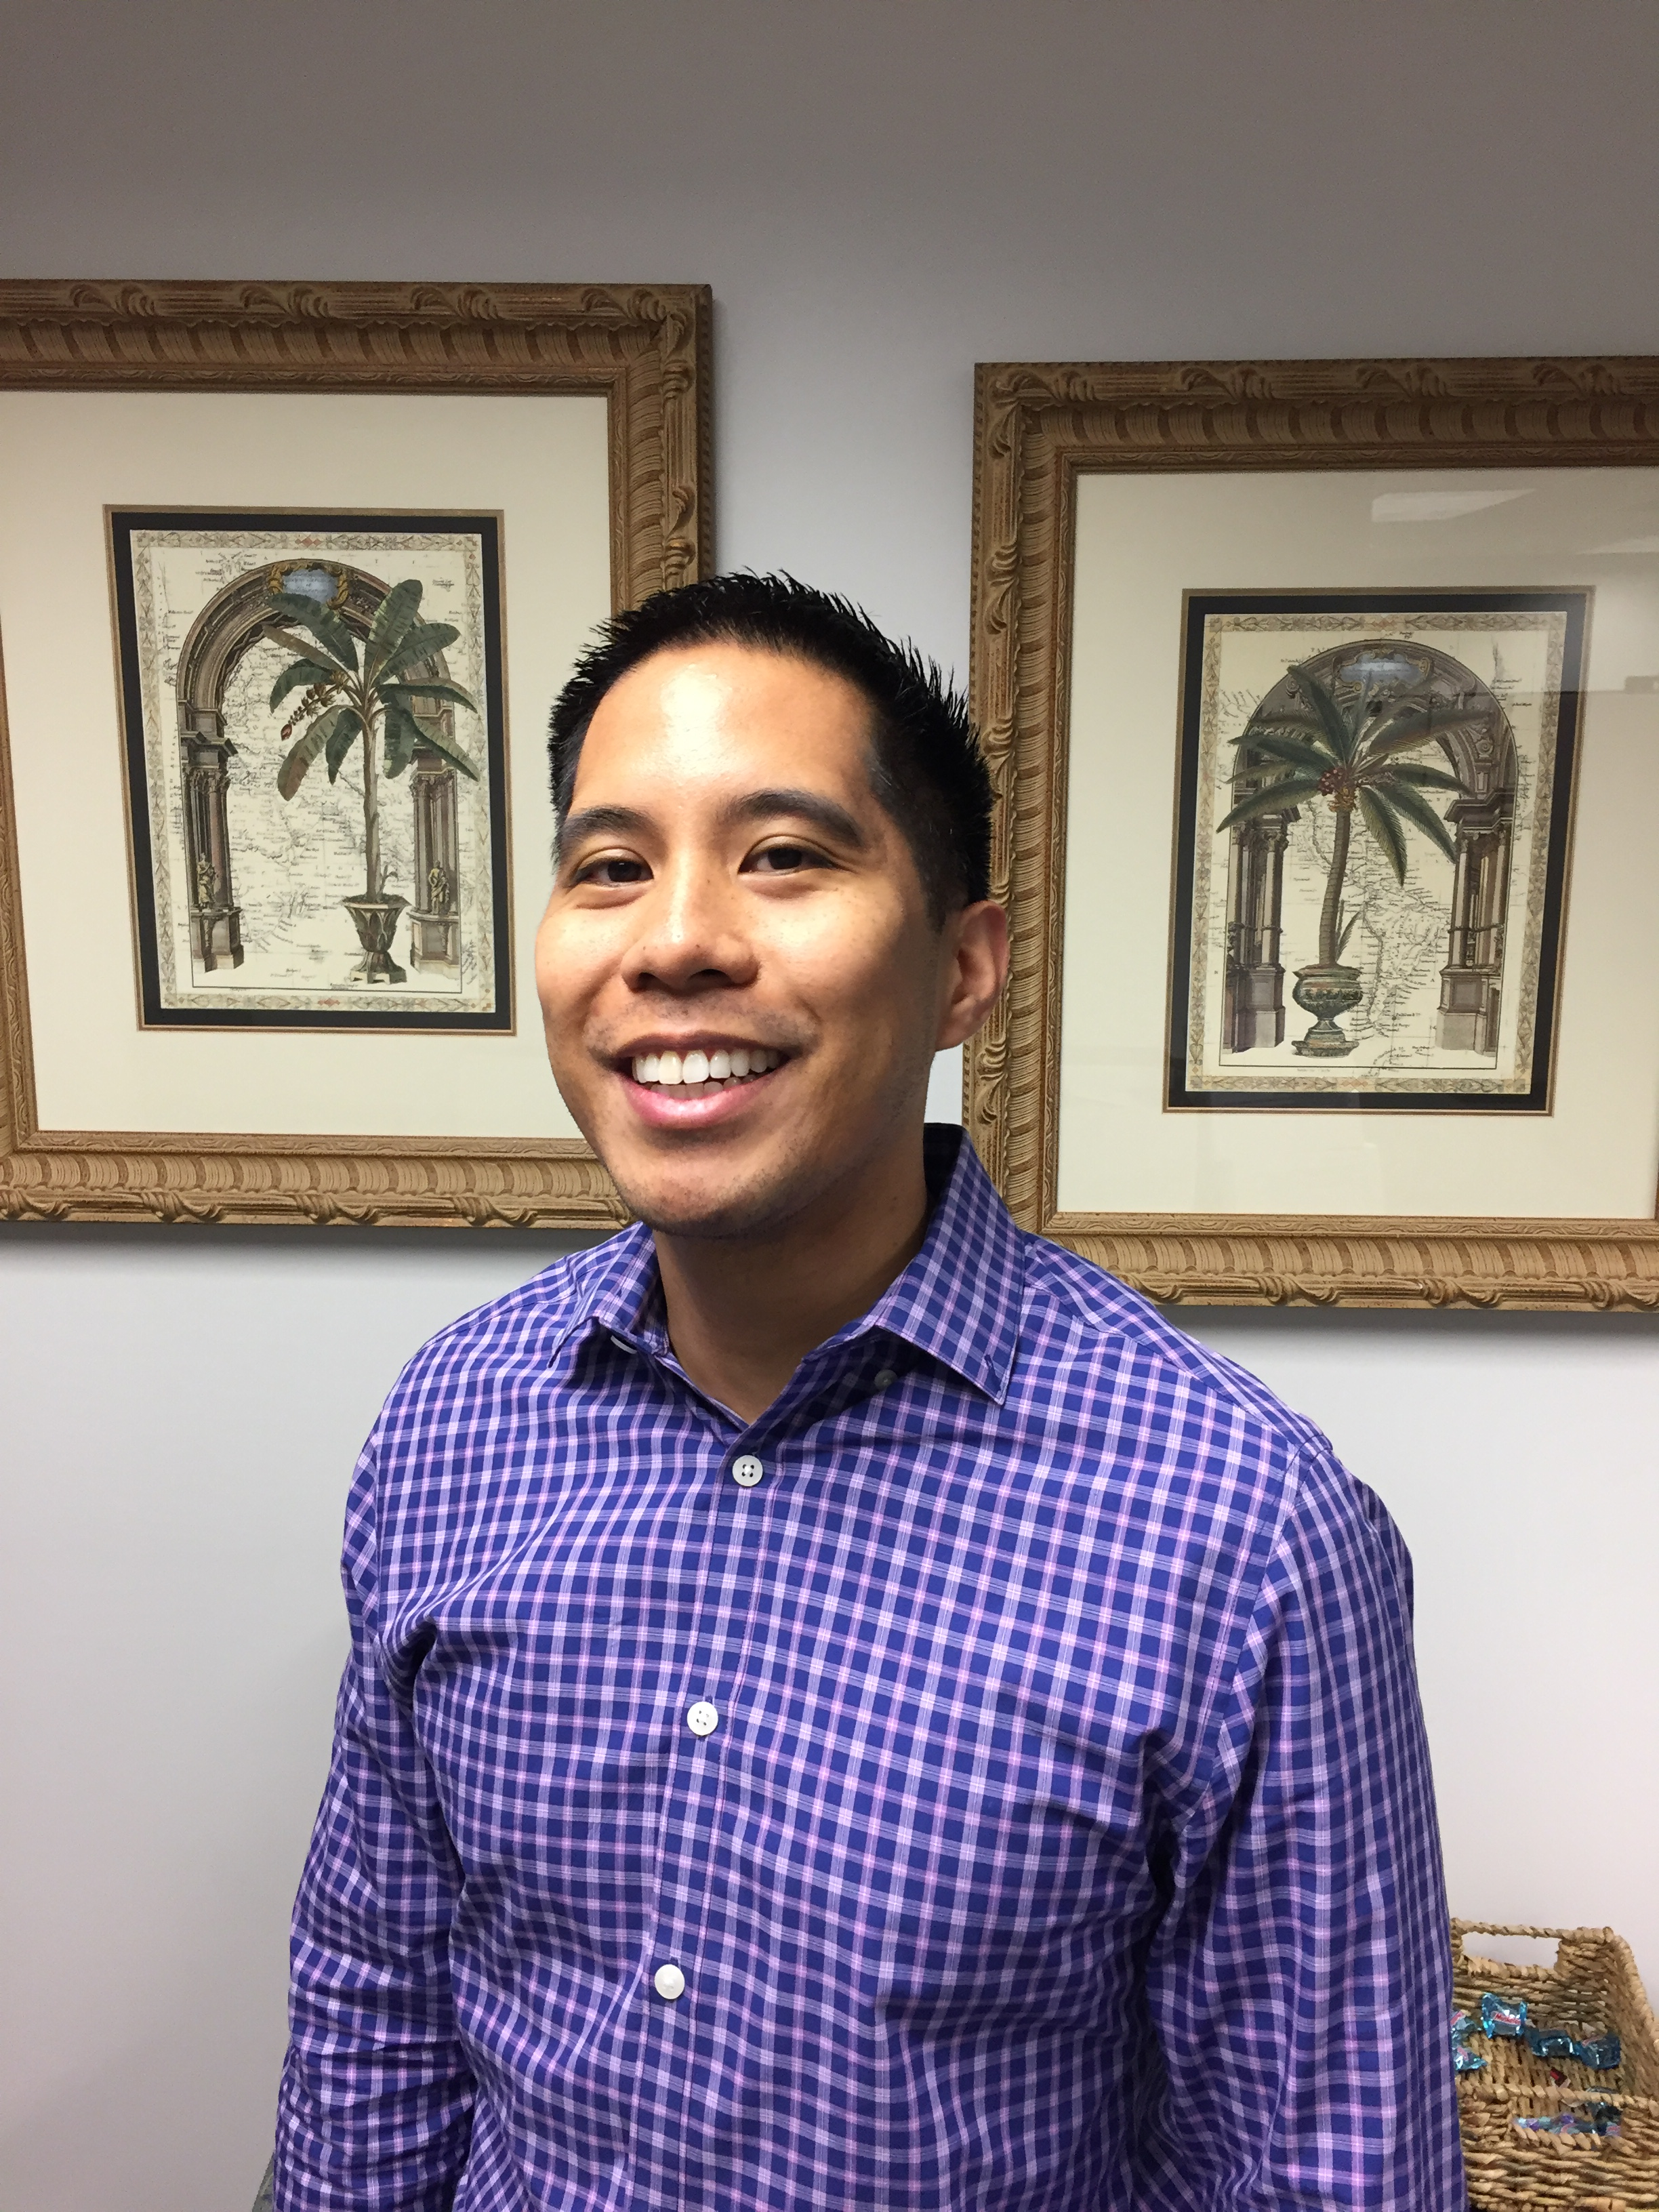 Erick Bautista - Assistant Director of Outreach